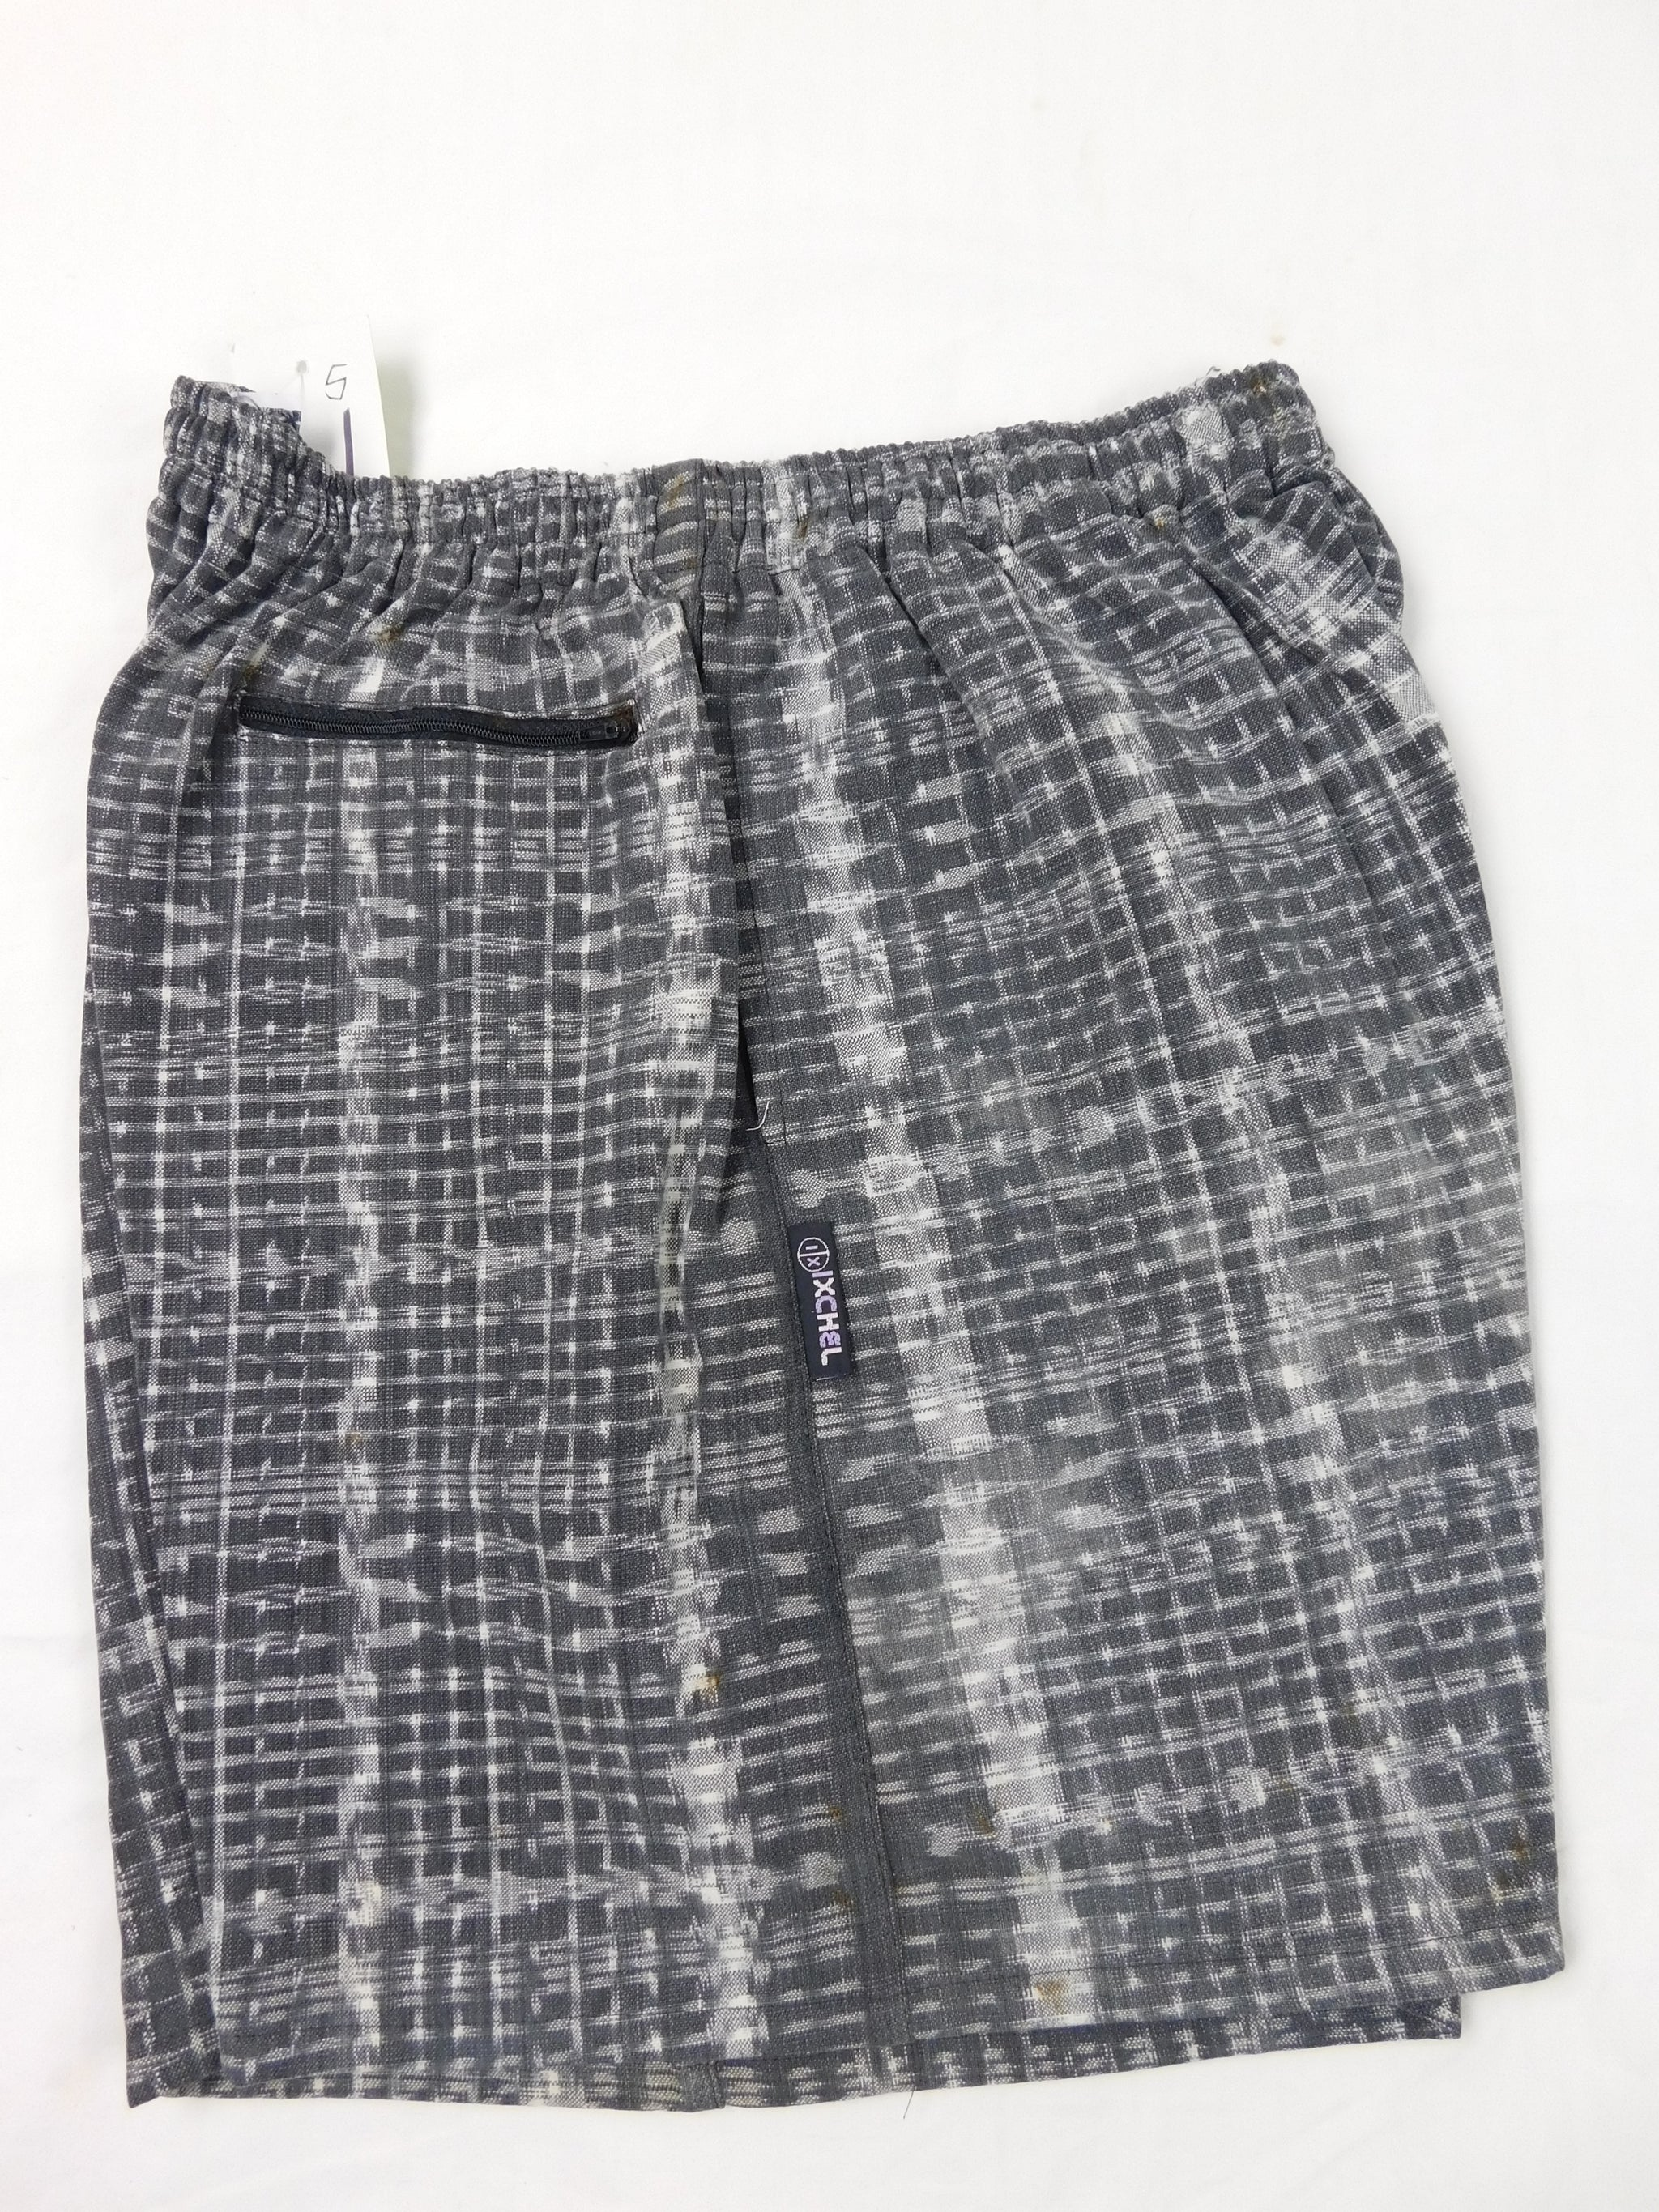 Copy of Women's Hand-Woven Summer Shorts